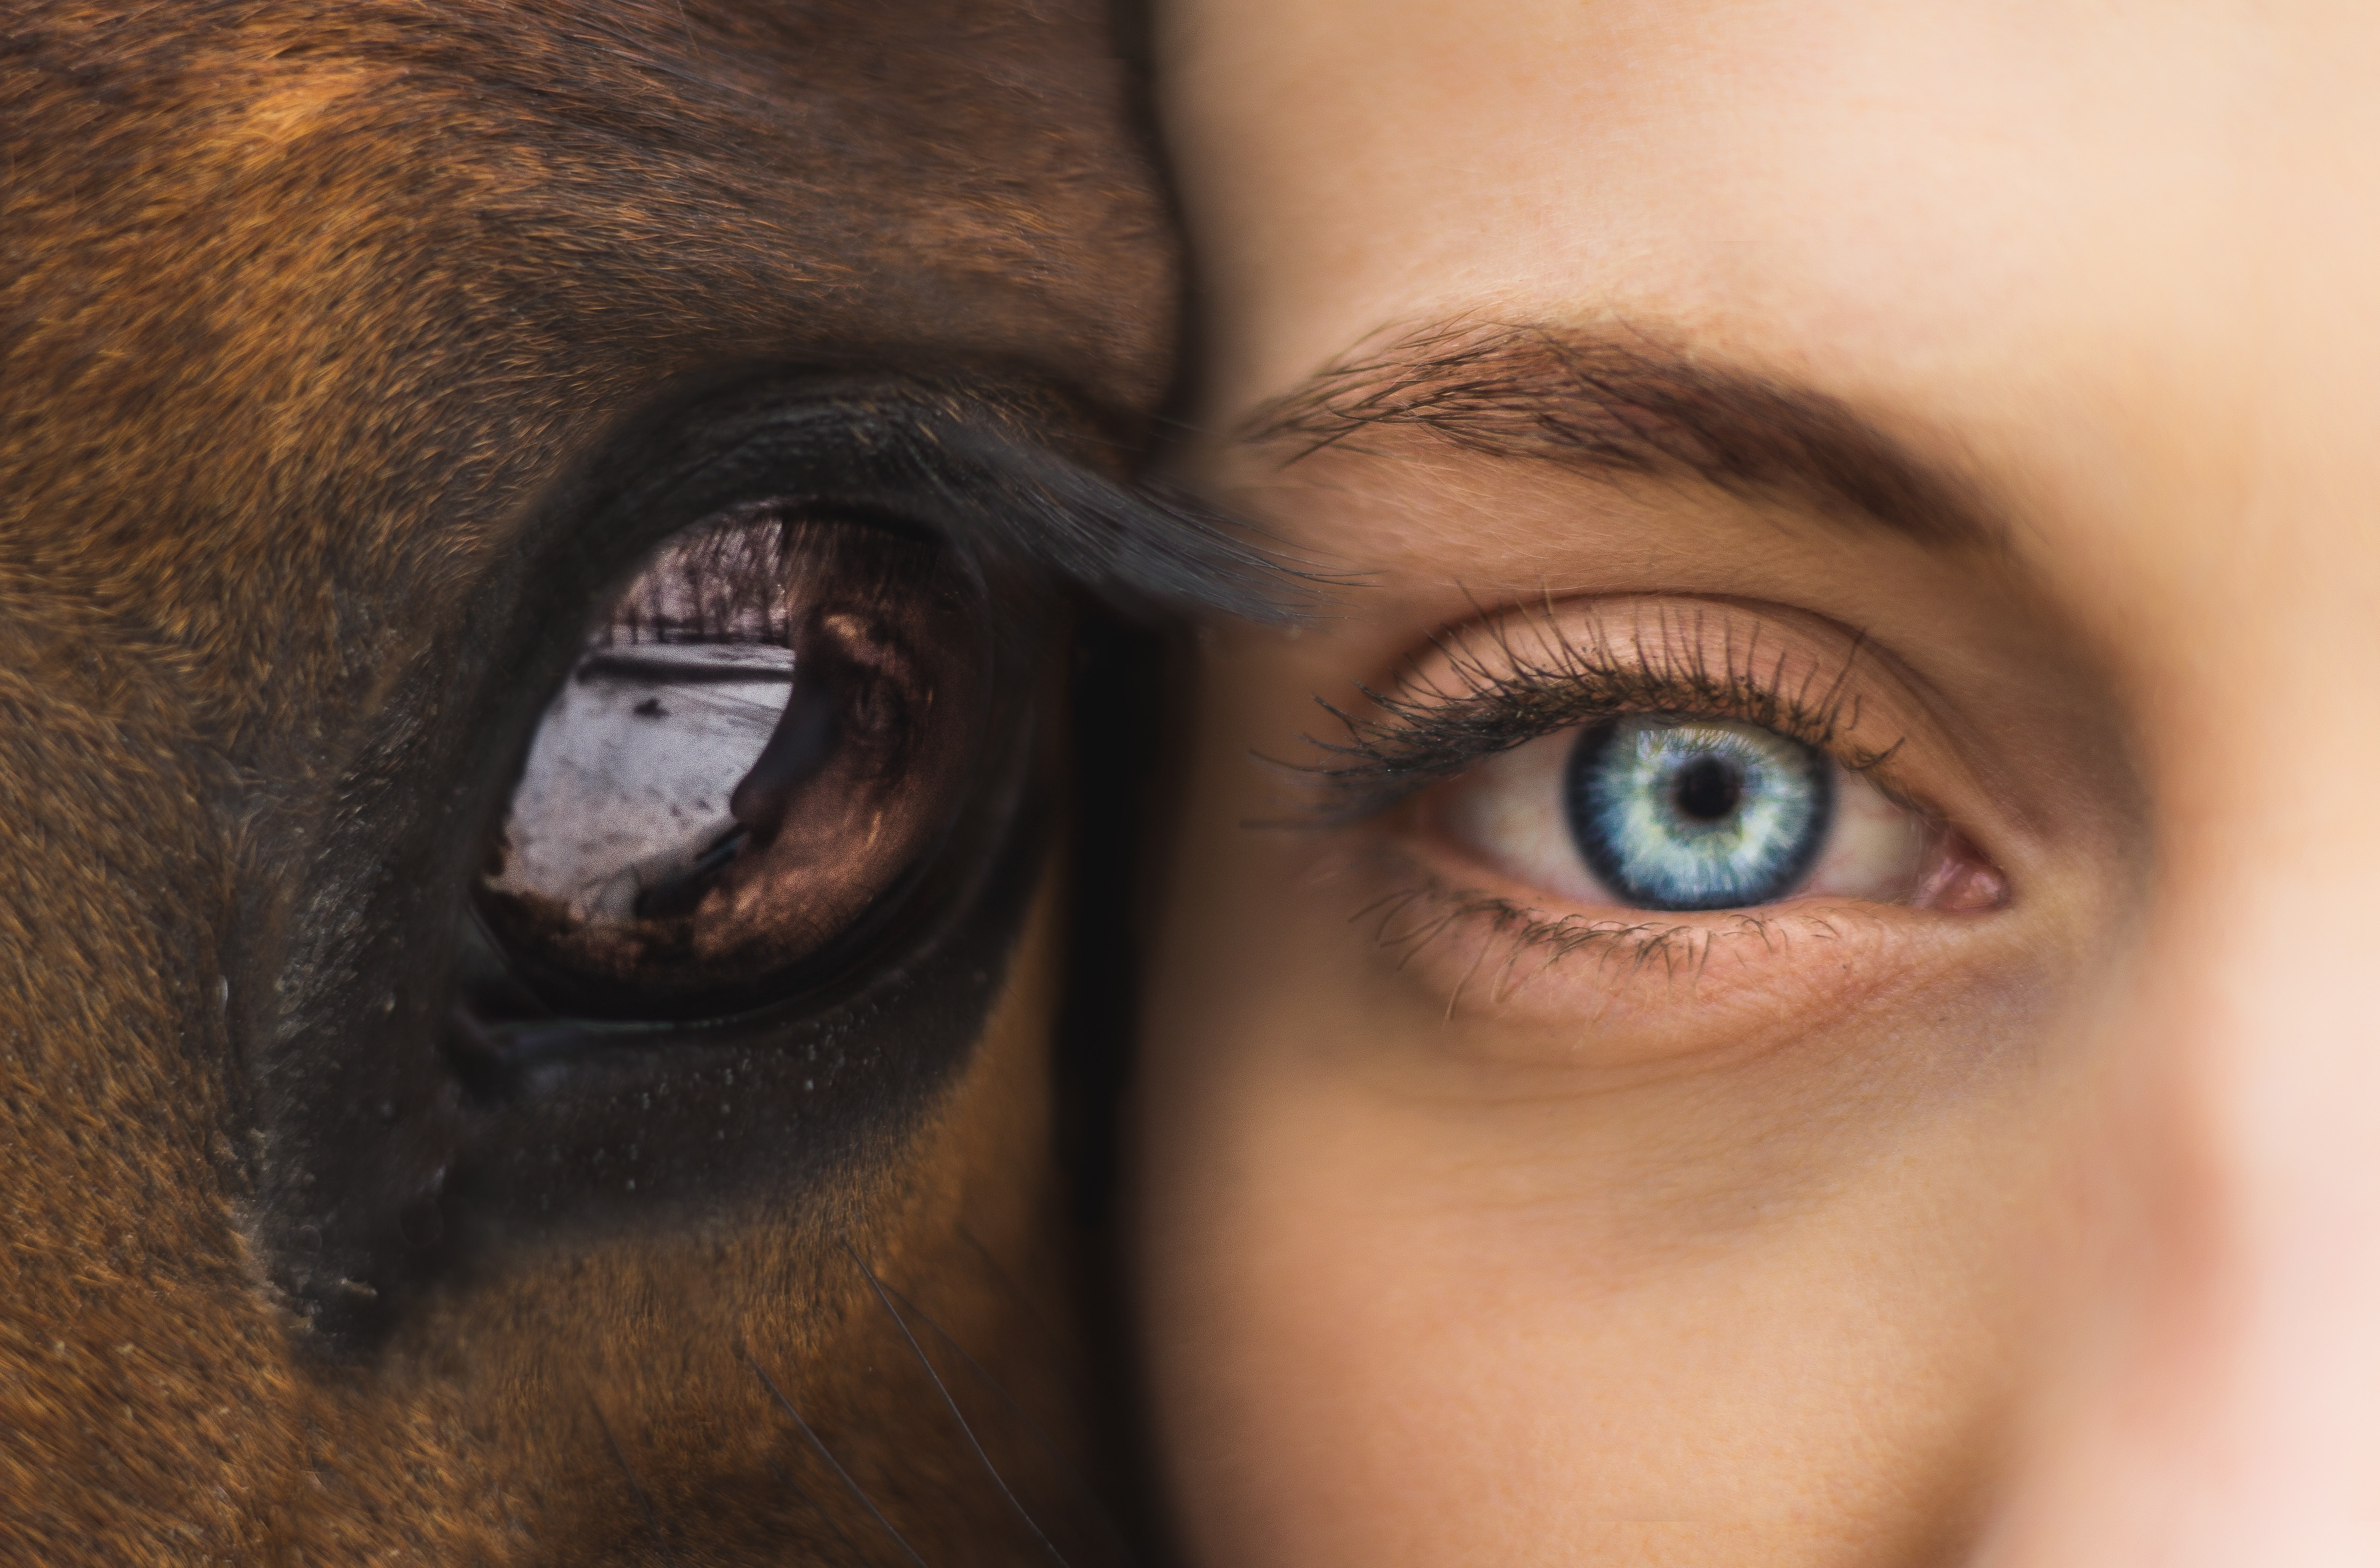 person and animal faces